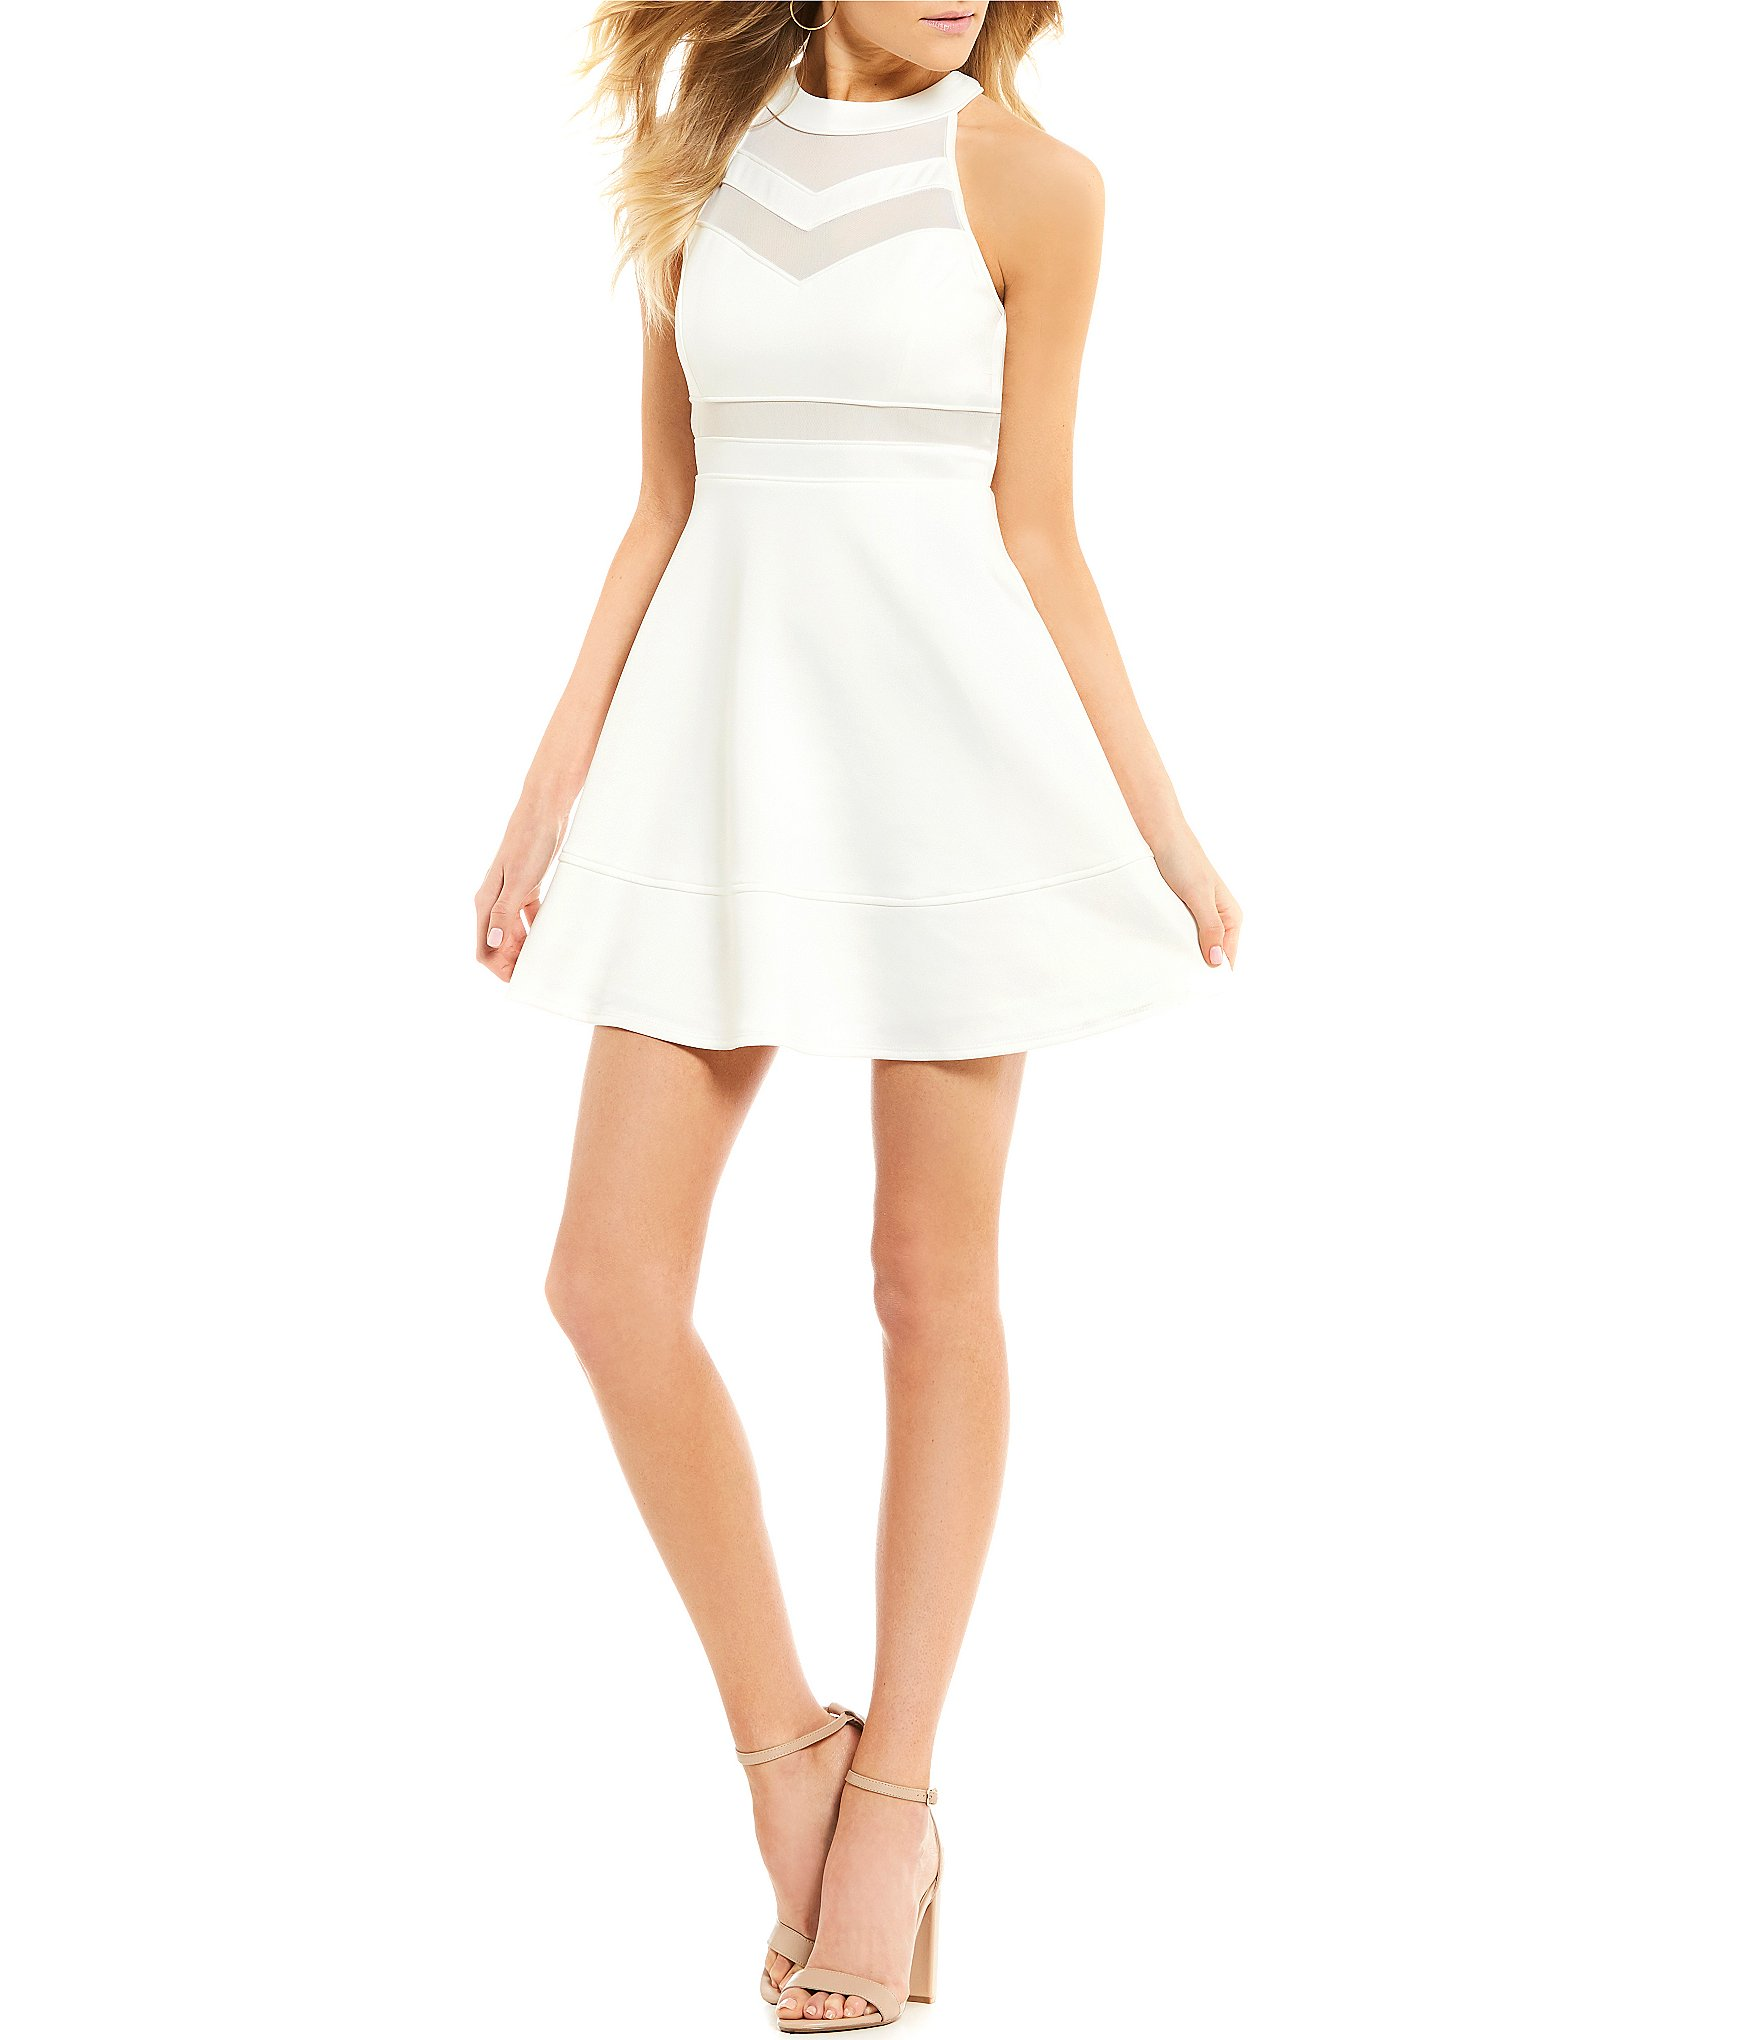 Honey and Rosie Sleeveless High-Neckline Illusion Skater Mini Dress